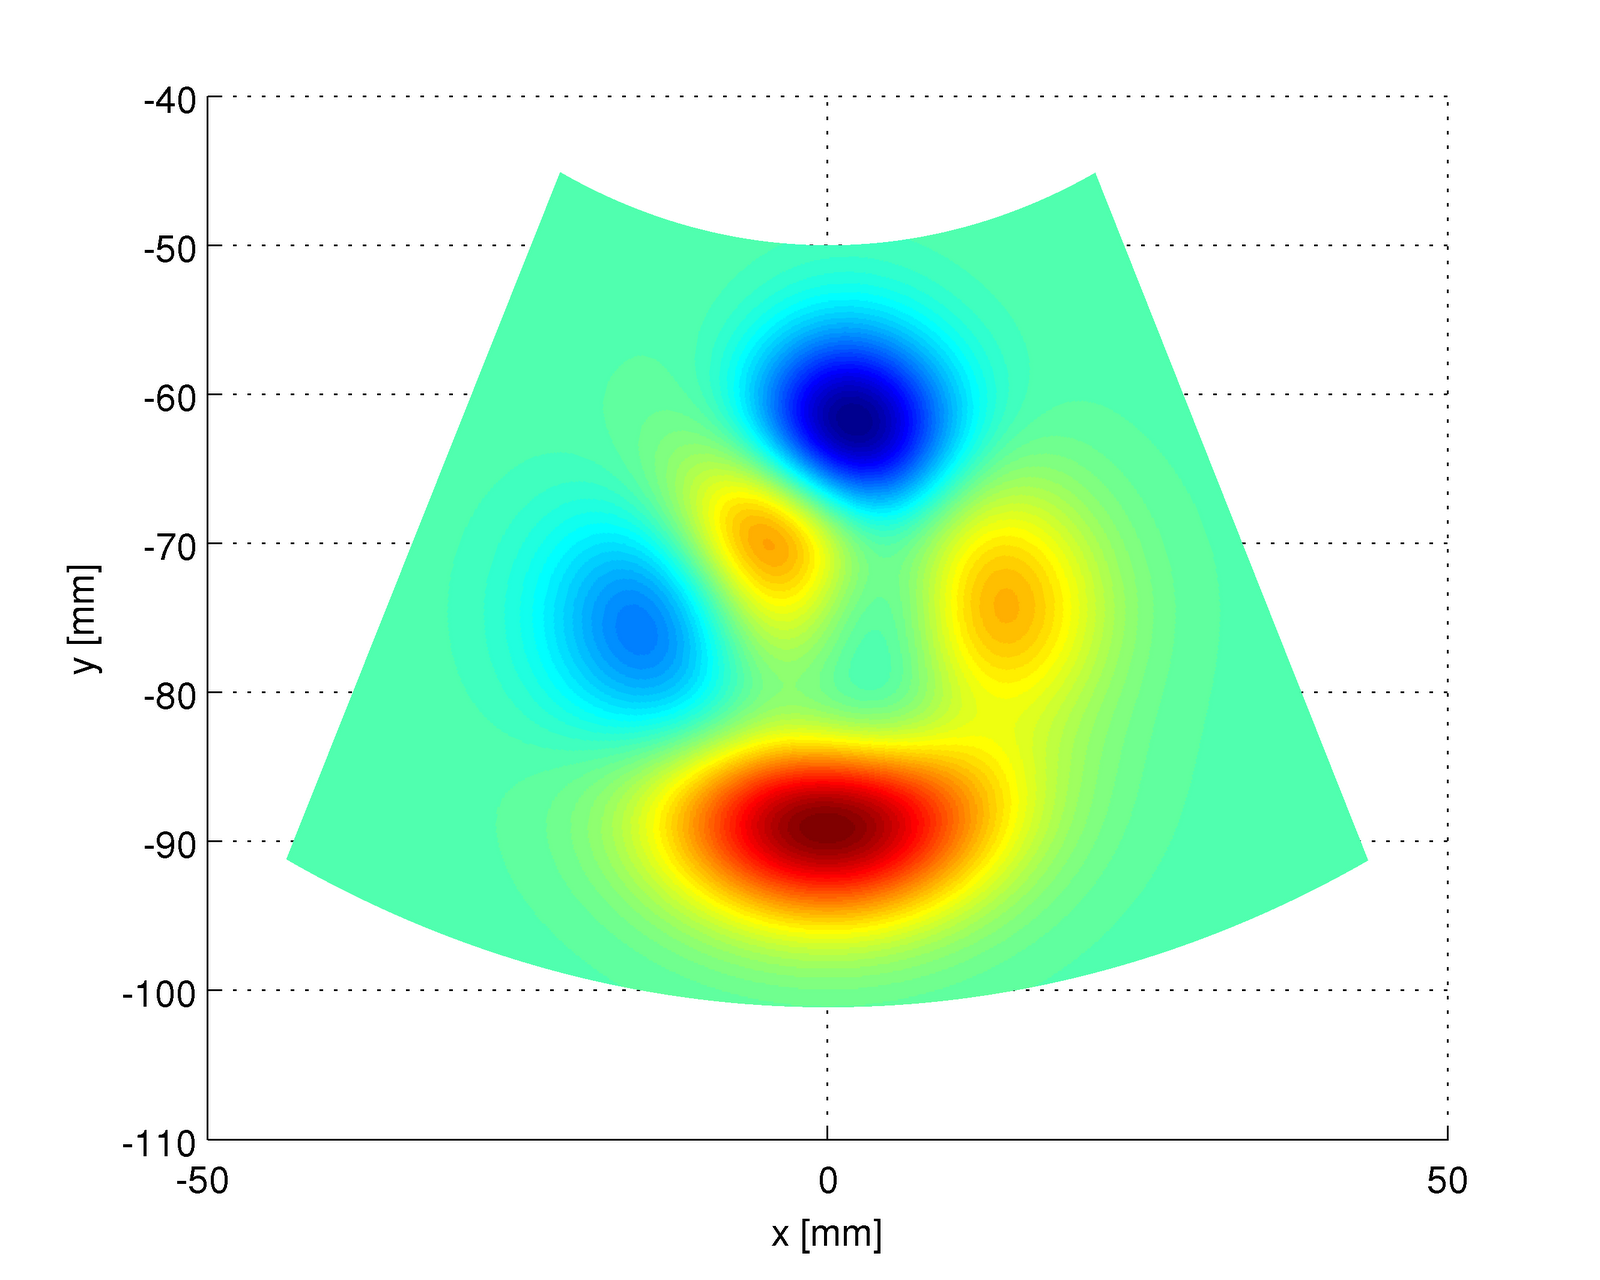 The tools of the trade: Plotting polar images in Matlab